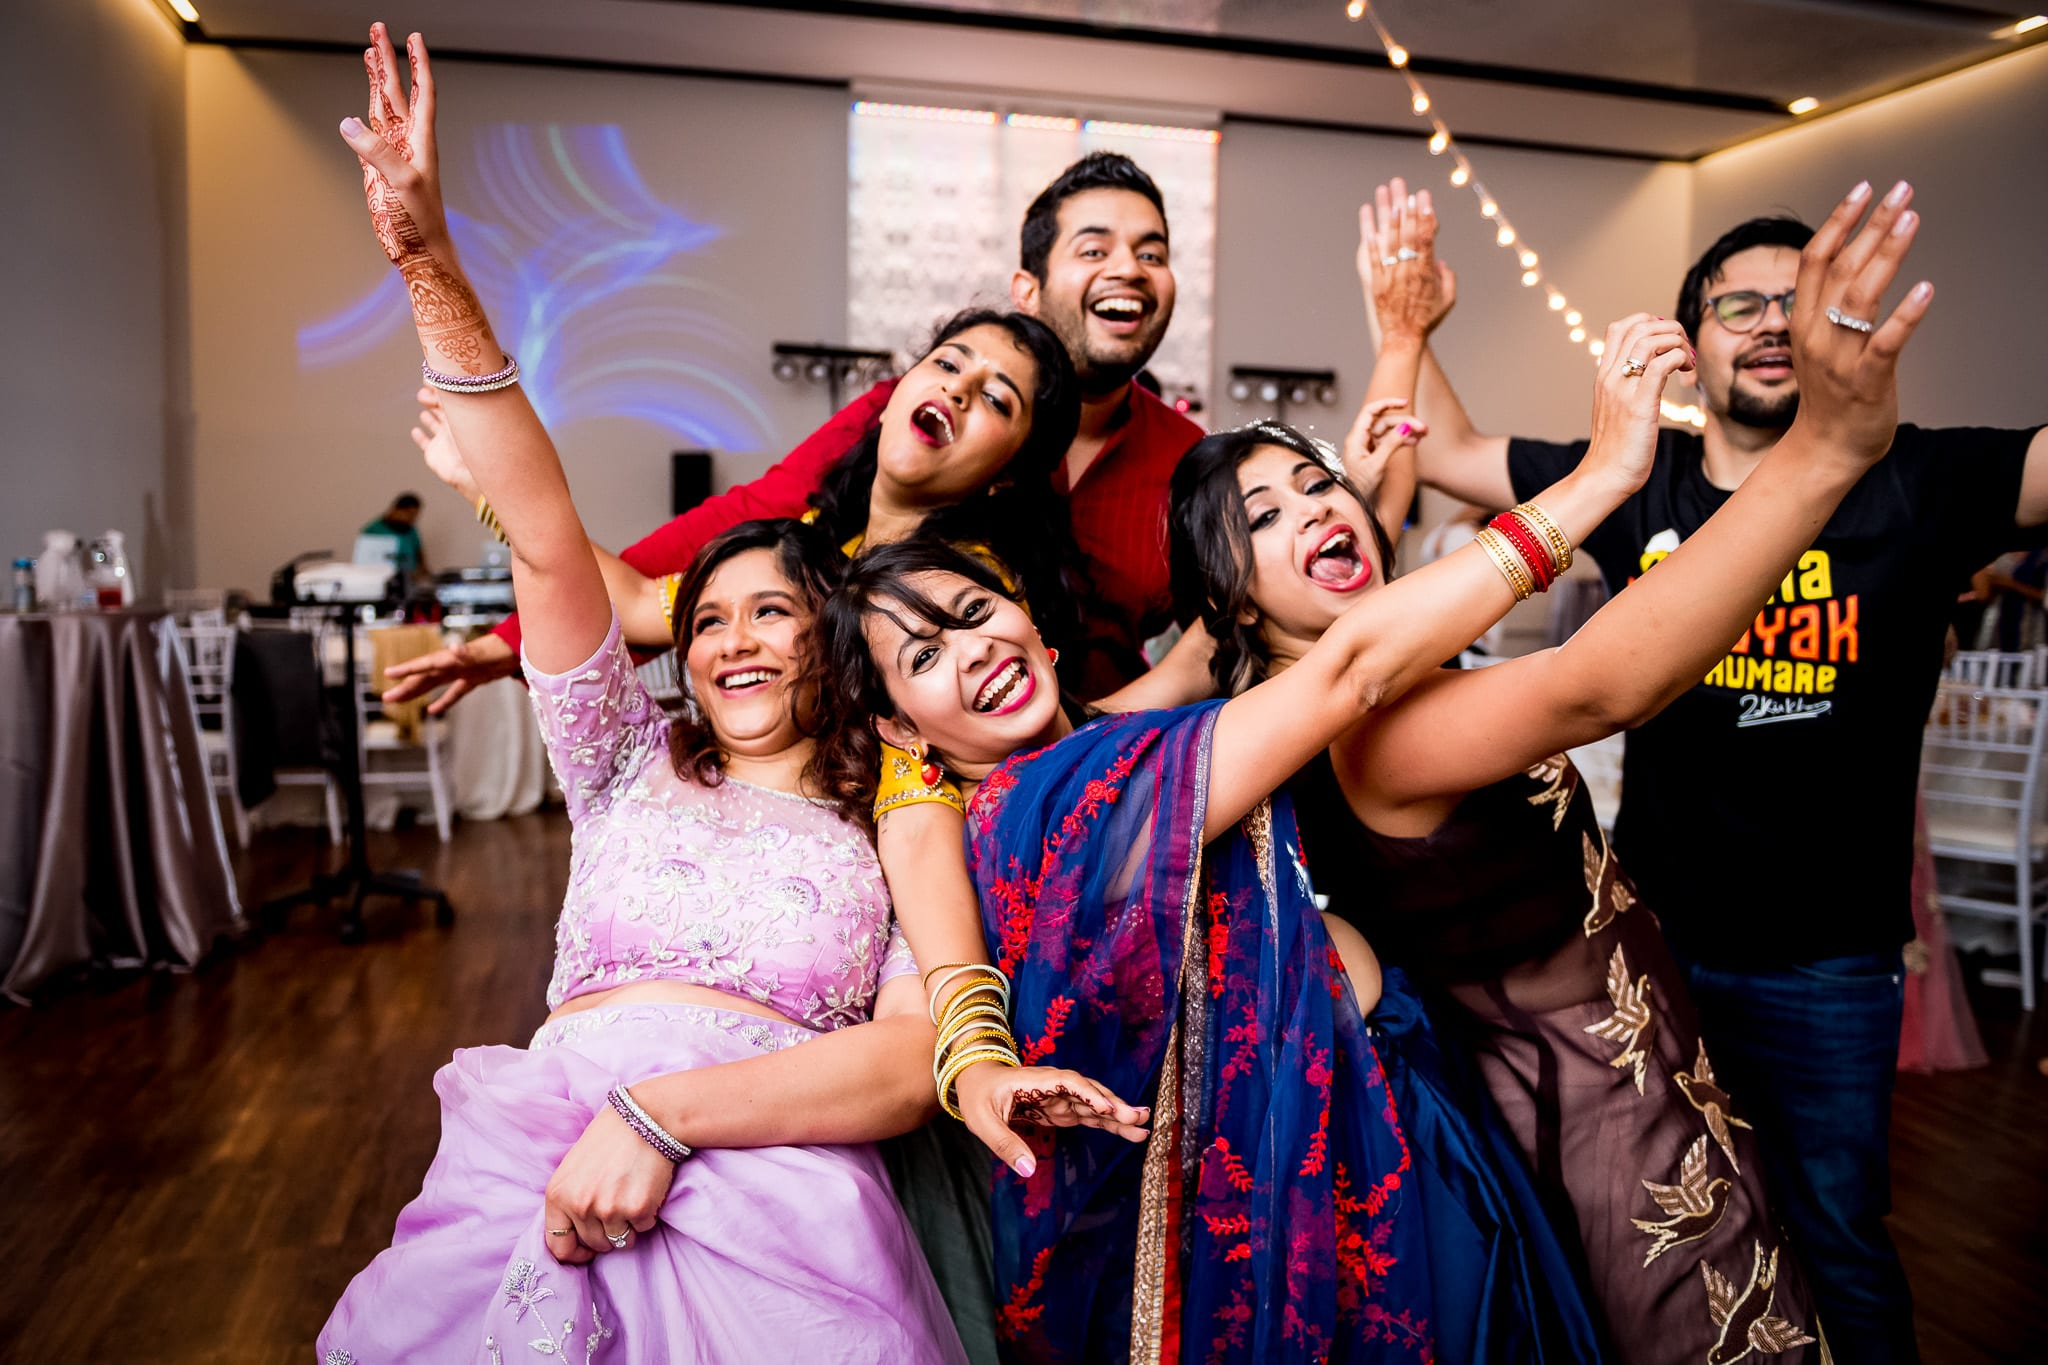 Wedding guests pose with the bride while dancing